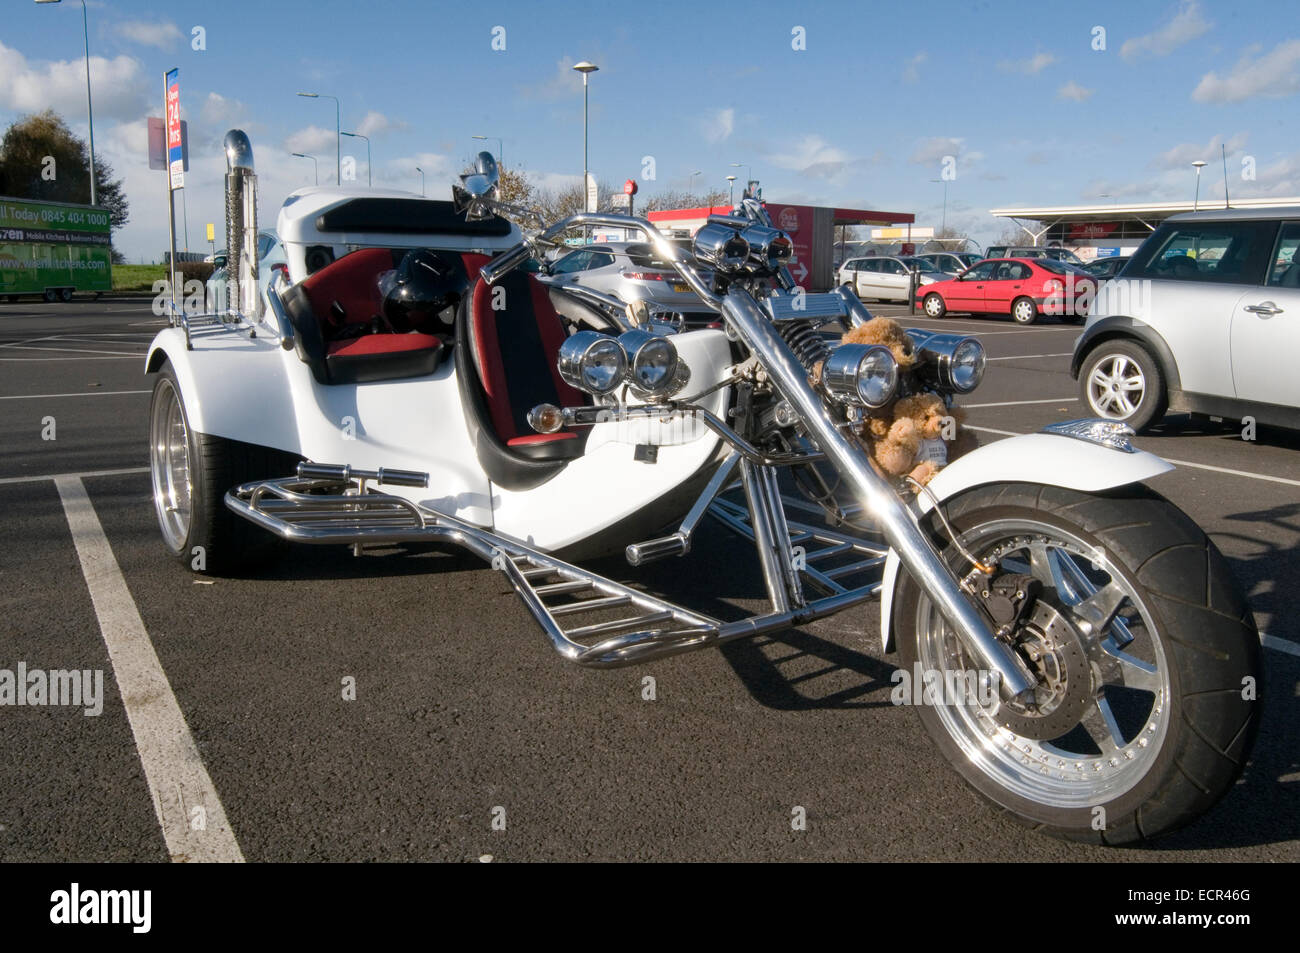 car bike vw volkswagen powered trike engine engines beetle beetles flat four boxer motor motors three wheeler wheeled